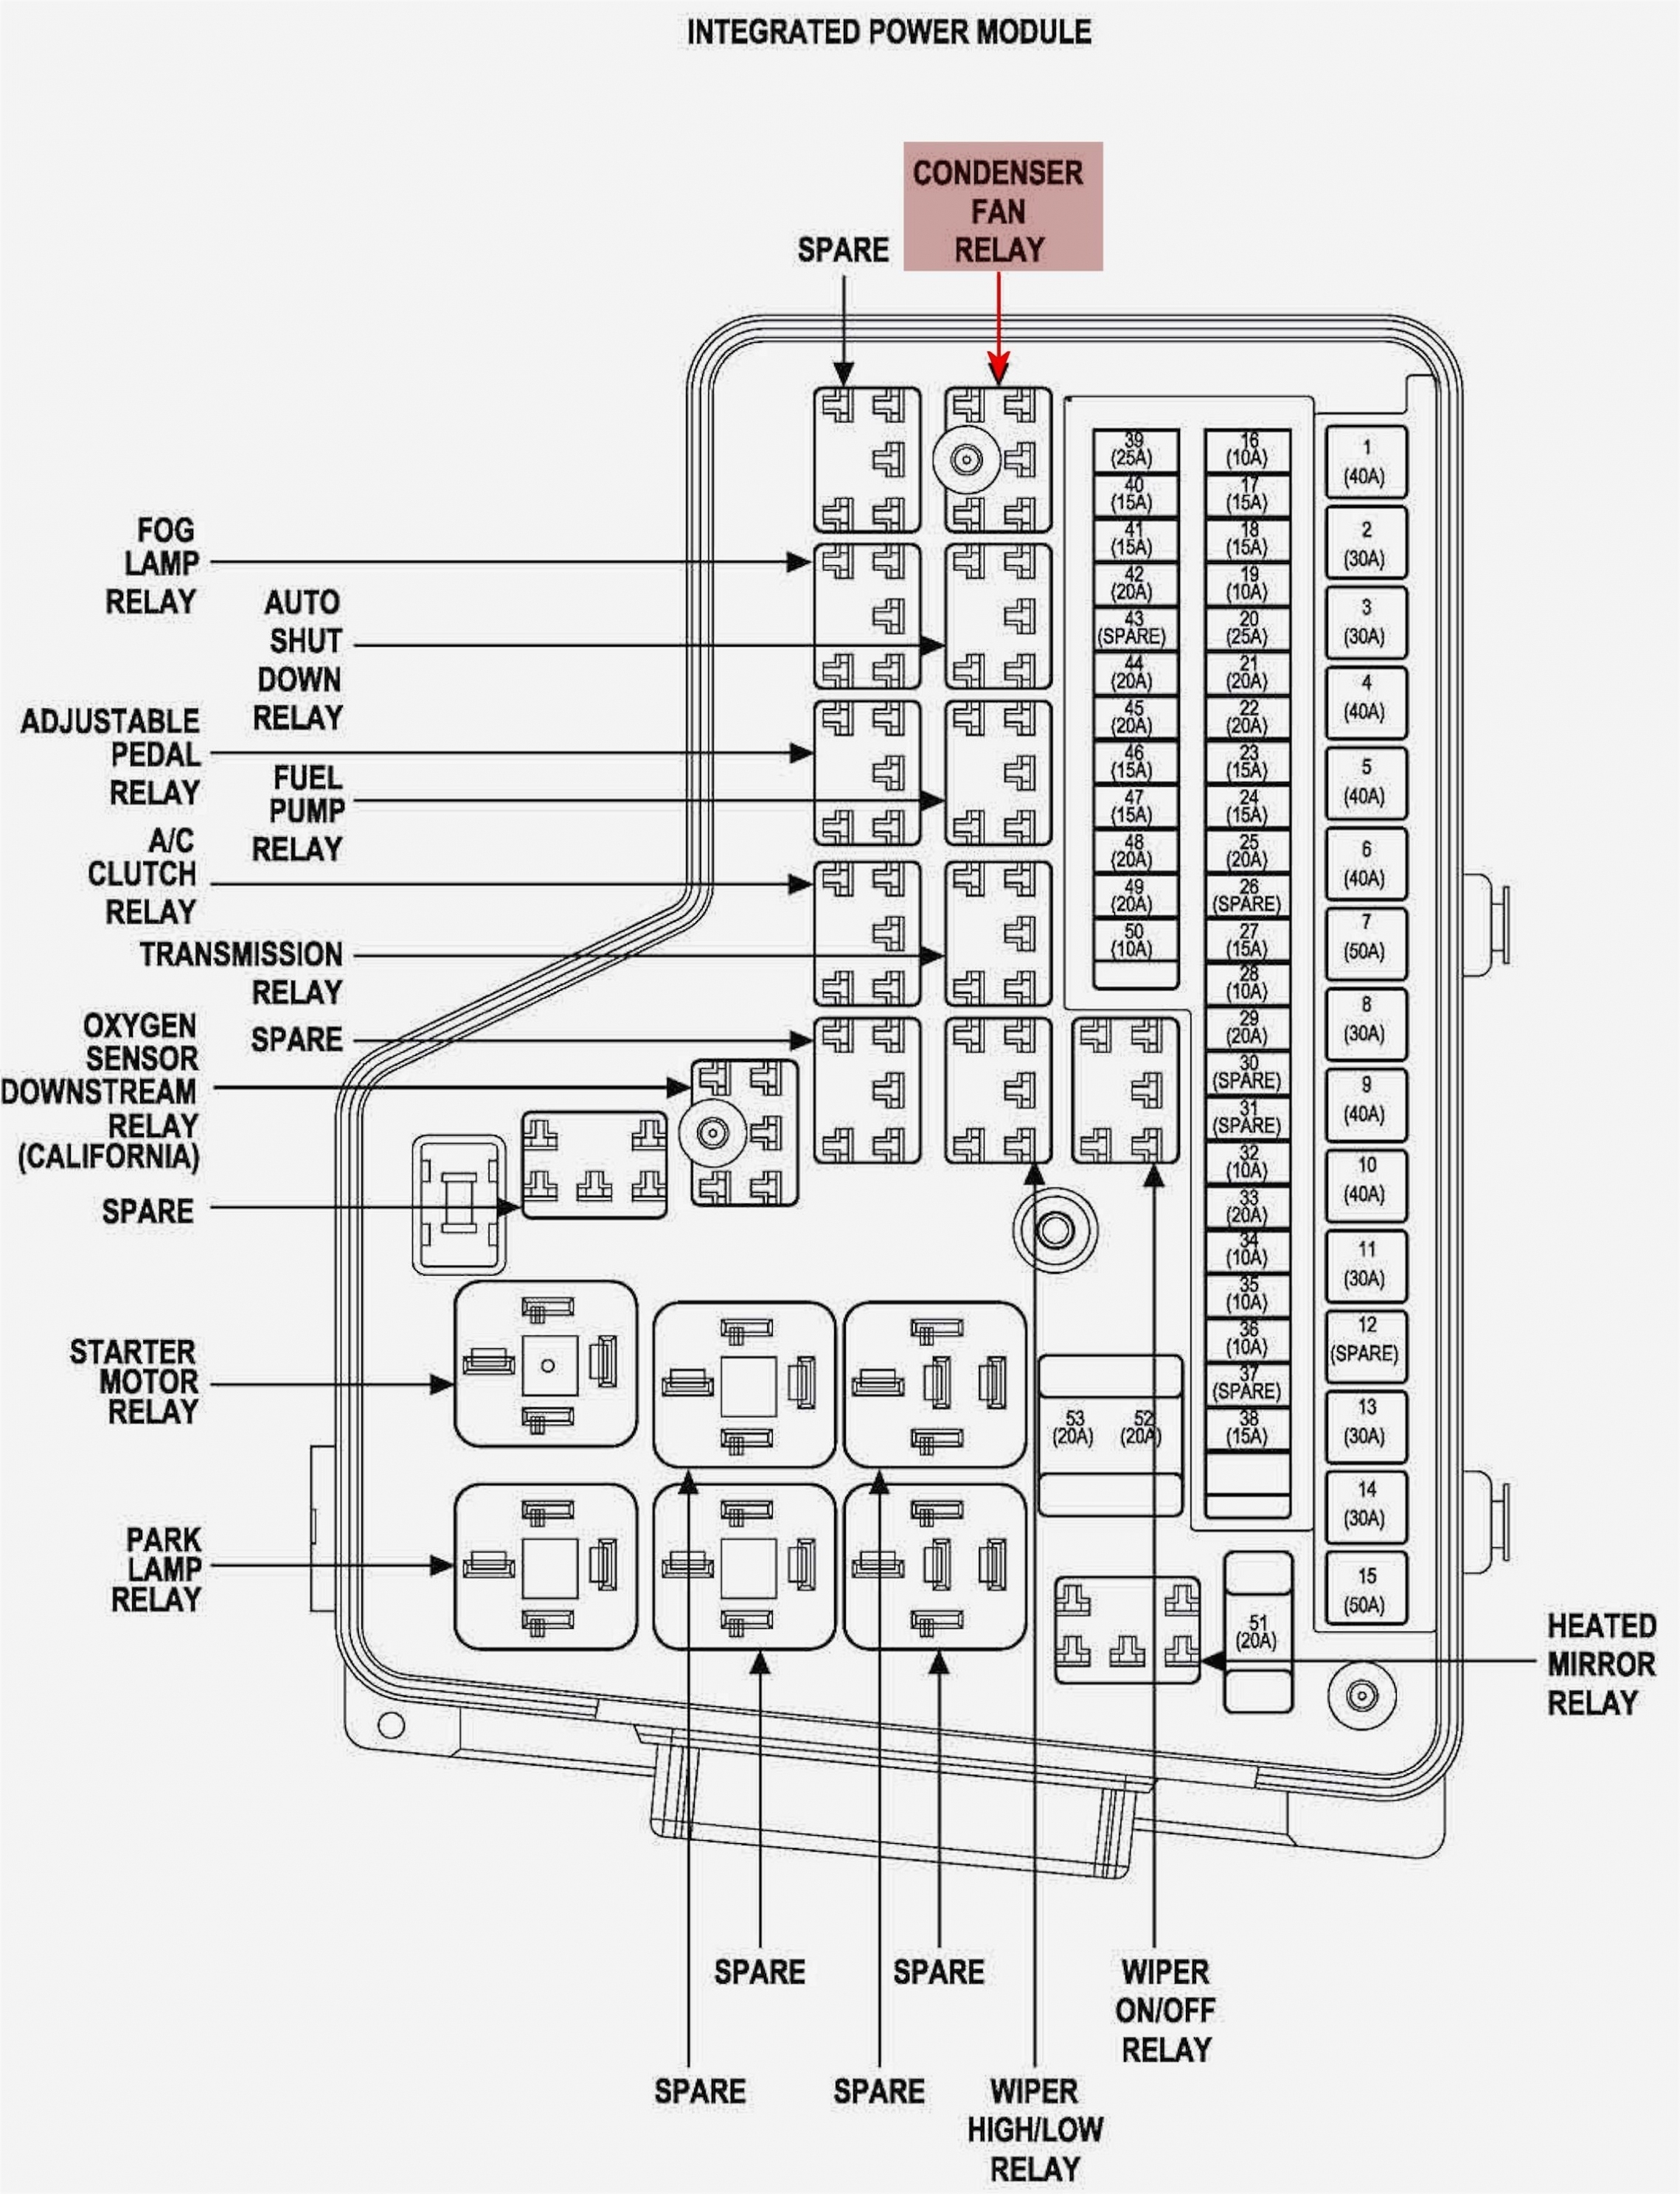 dodge caravan 2001 fuse box location wiring diagram database. Black Bedroom Furniture Sets. Home Design Ideas